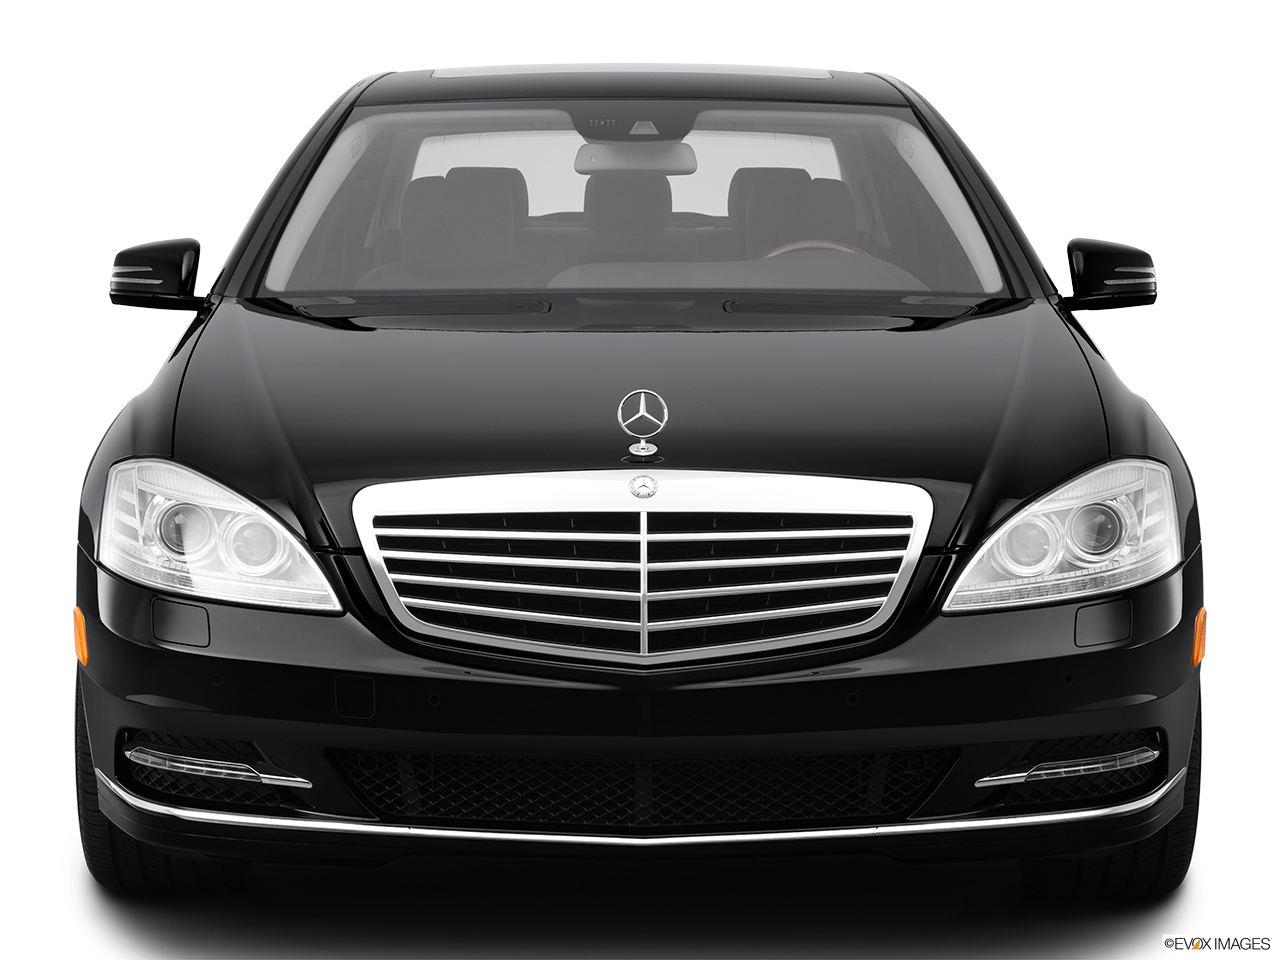 2012 Mercedes-Benz S-Class Hybrid S400 Low/wide front.